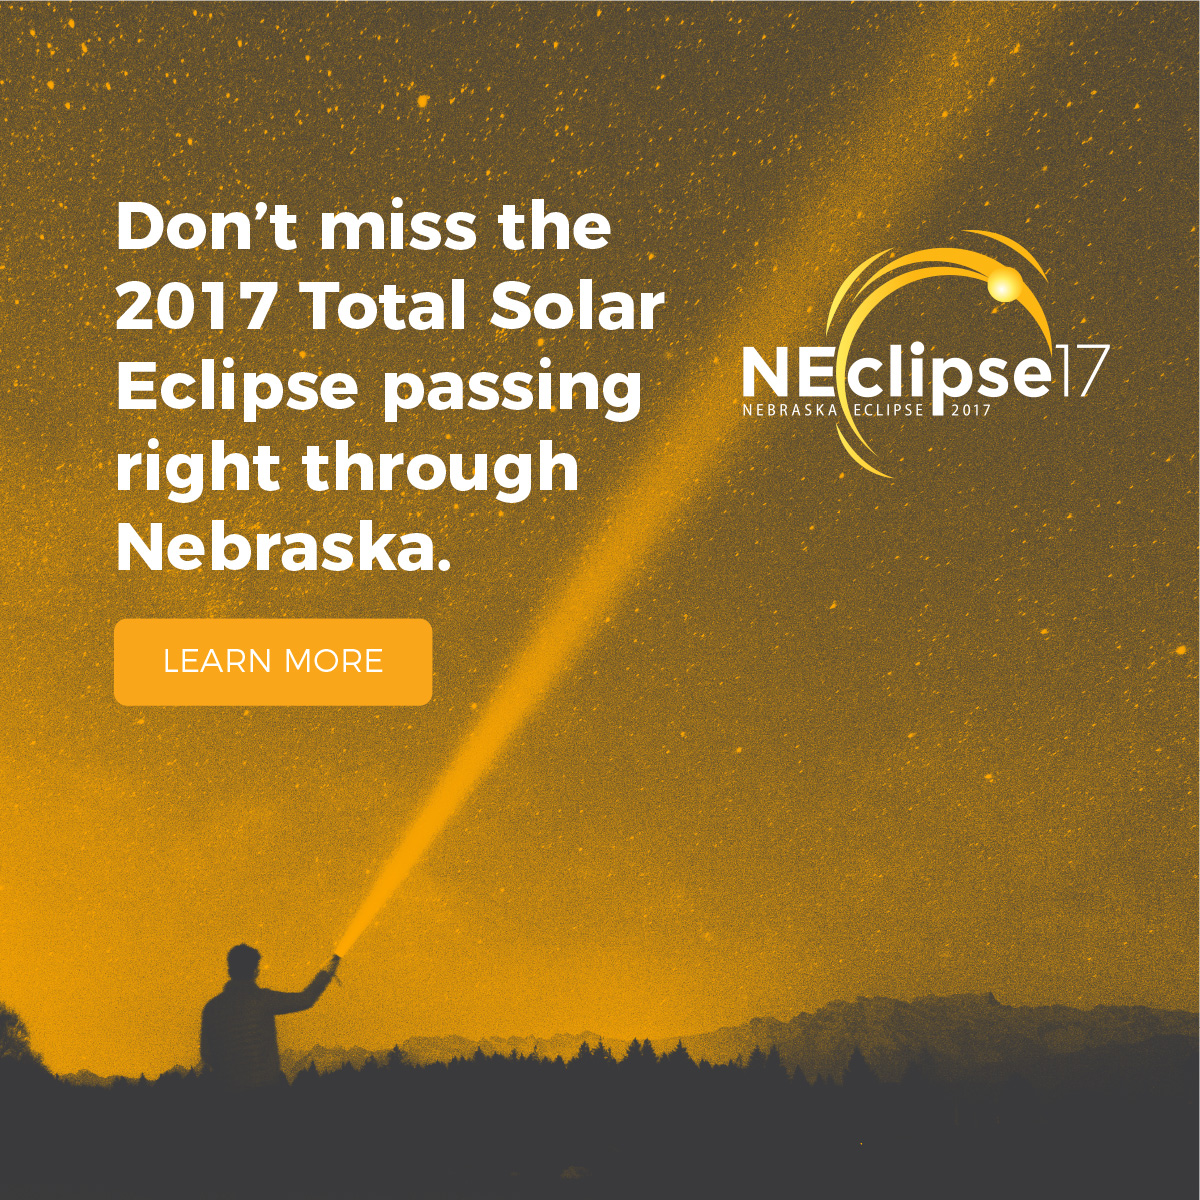 Nebraska Eclipse 2017